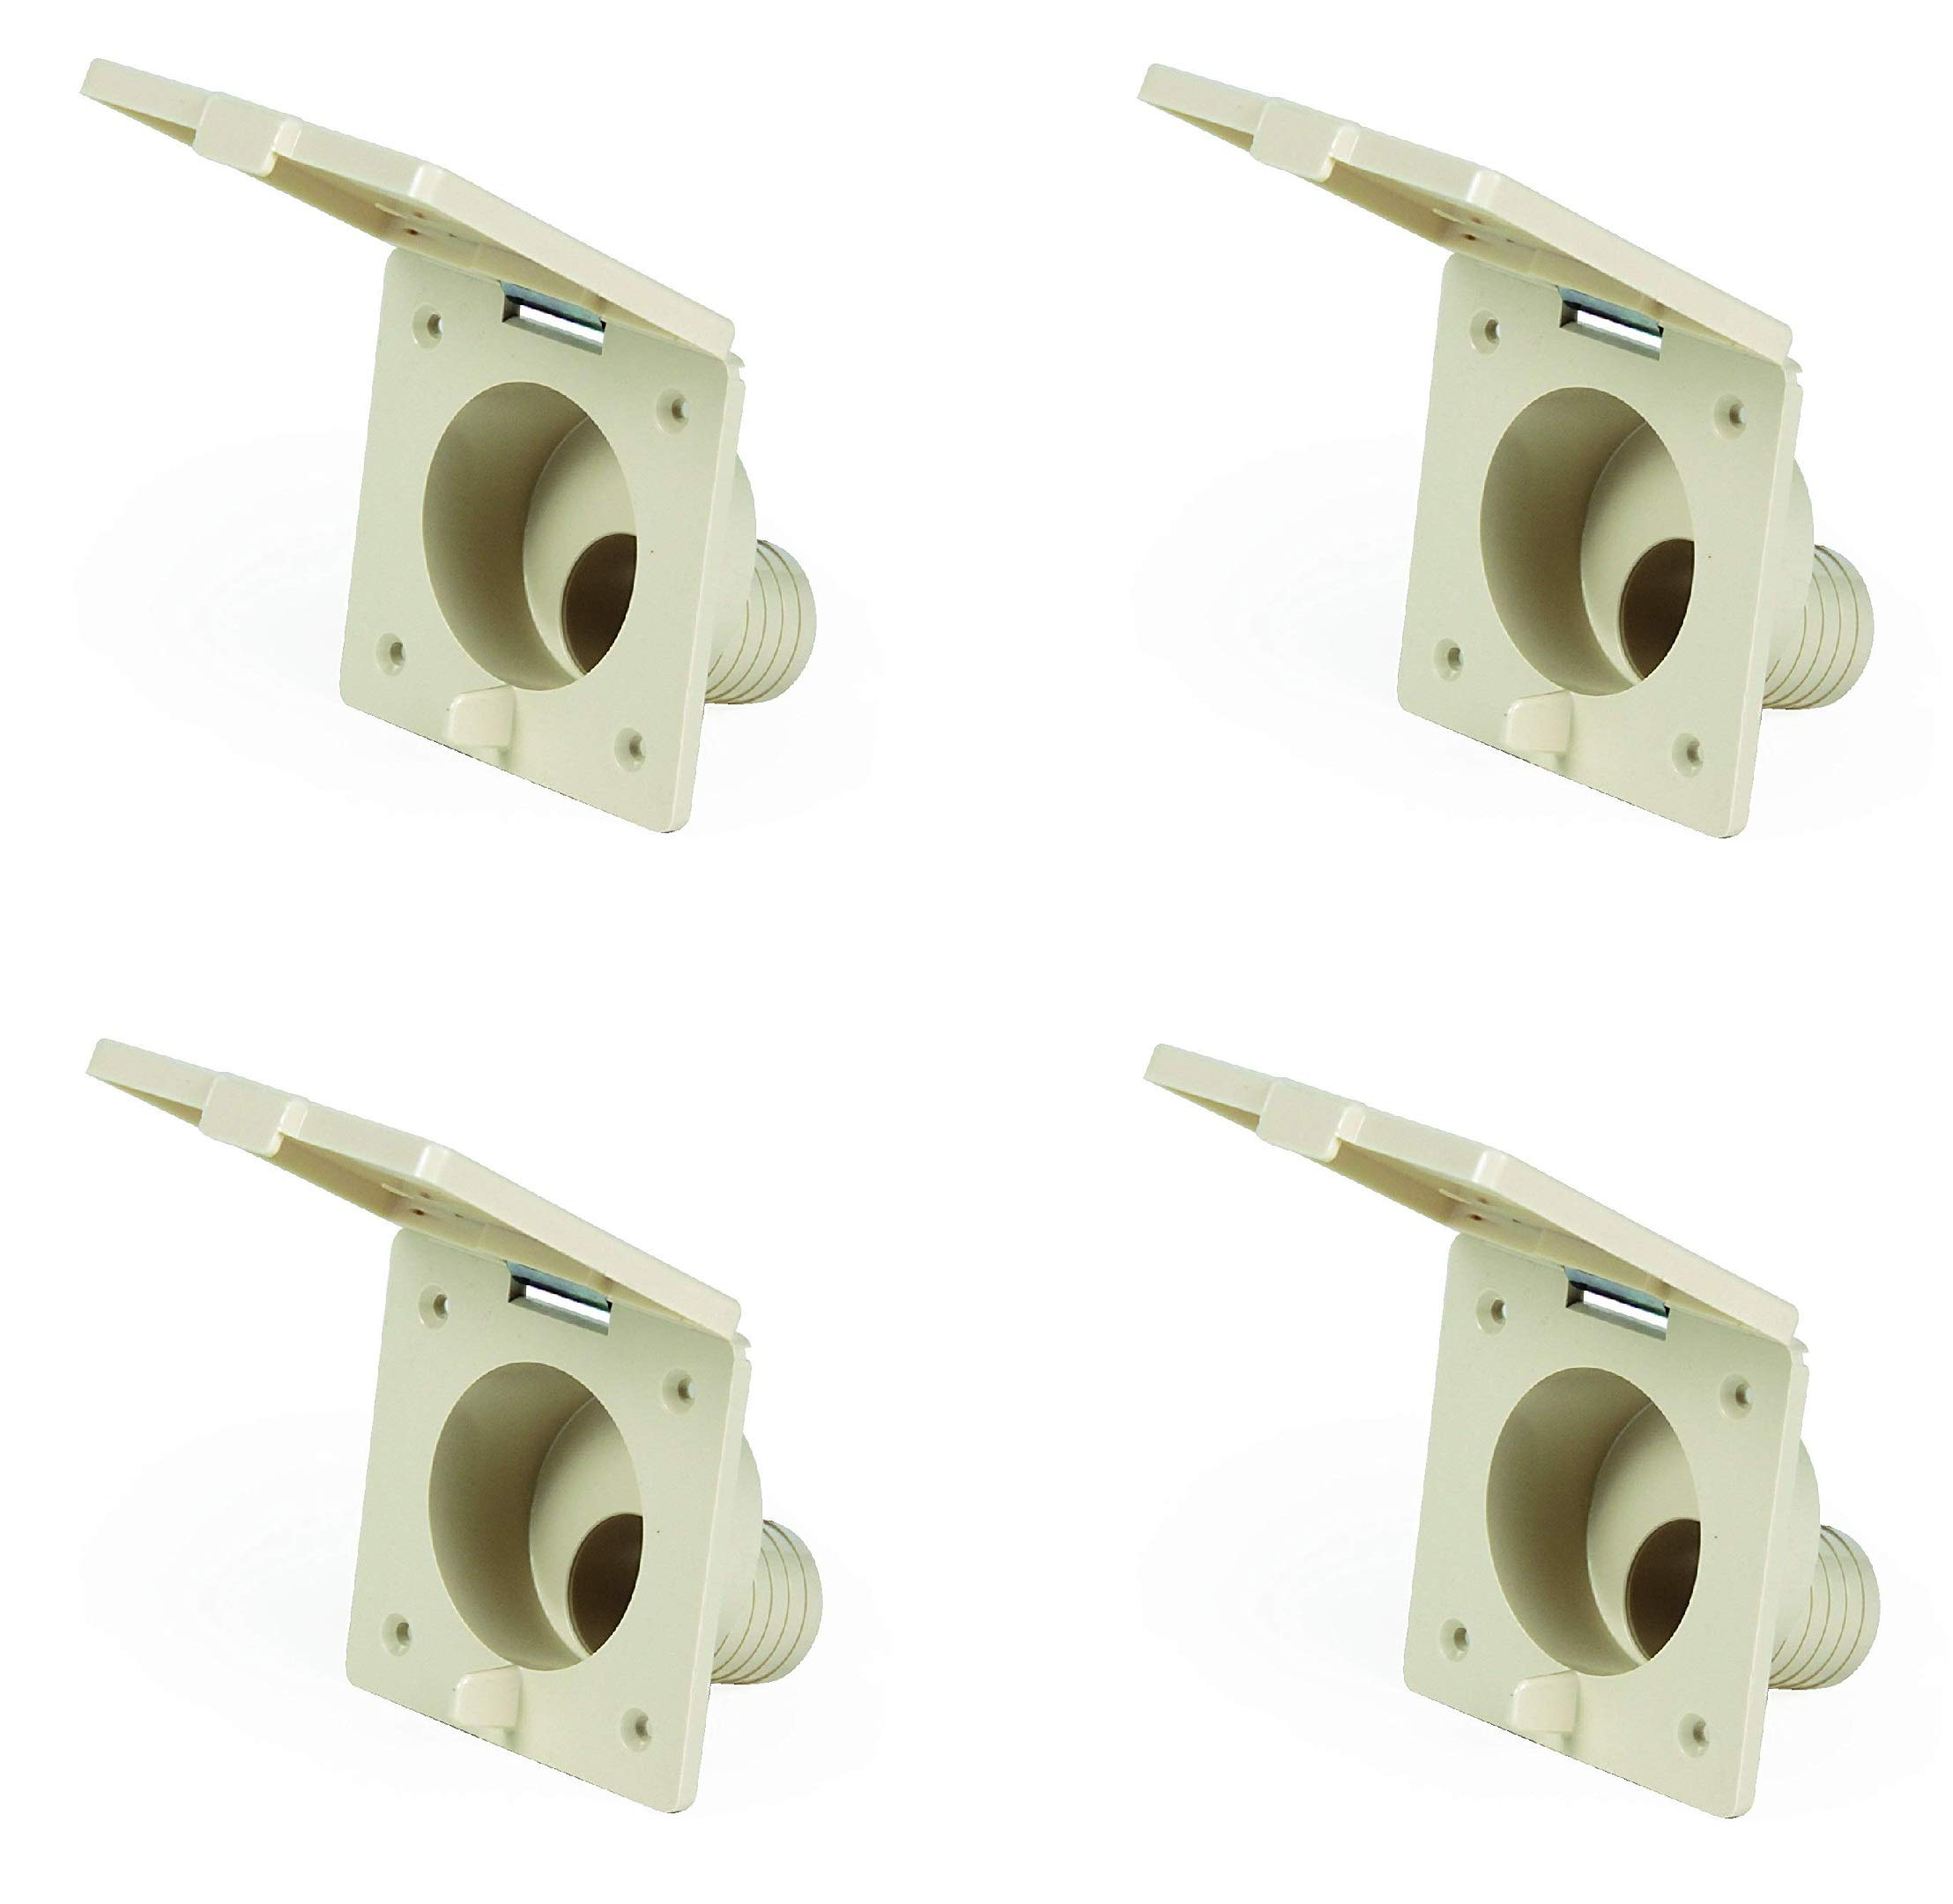 Camco 37102 Replacement Fresh Water Fill Spout (Beige) - Lead Free (4)